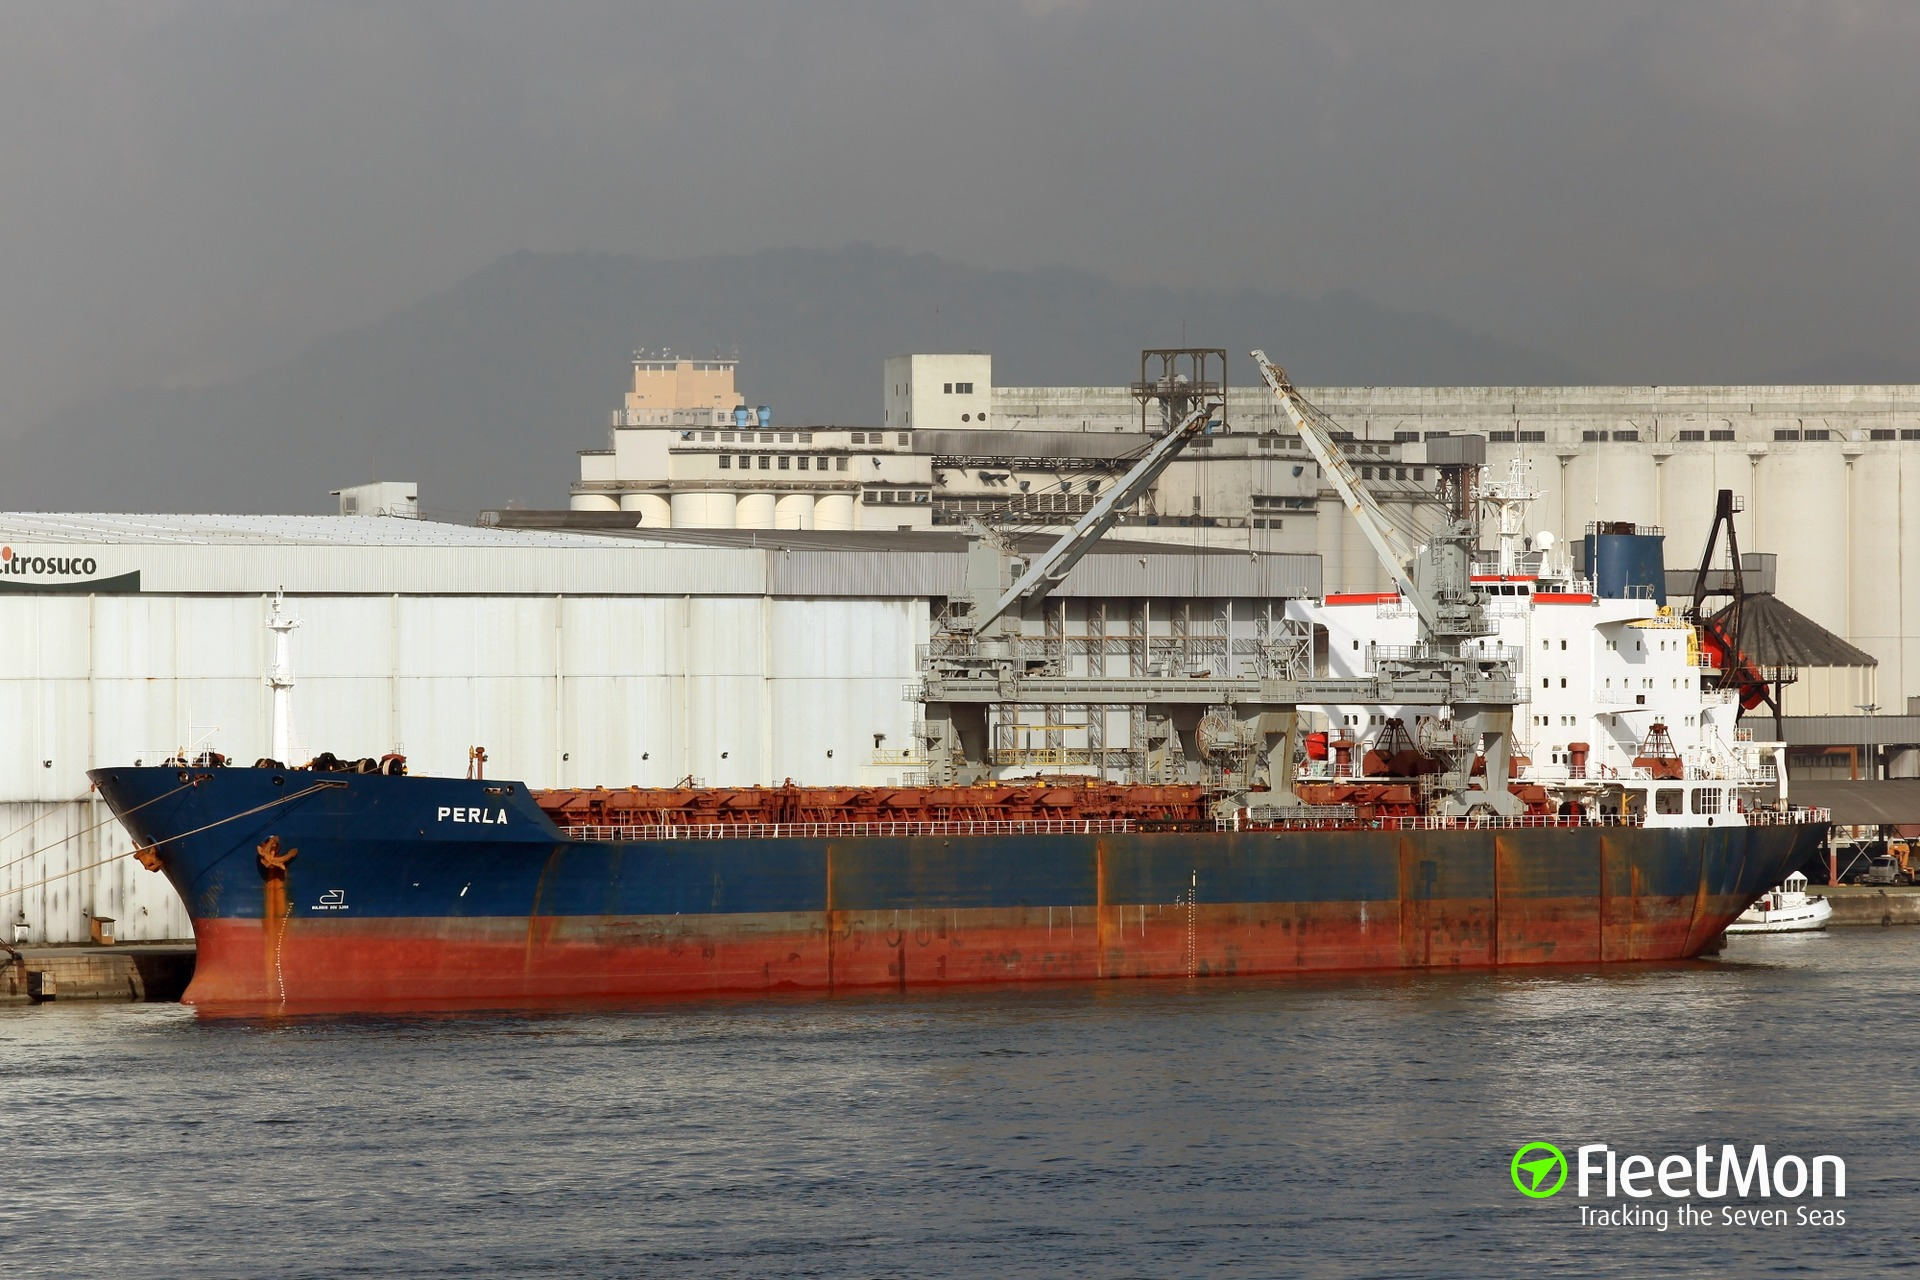 Tanker Perla adrift off Somalia coast after fire, three crew seriously burned in fire